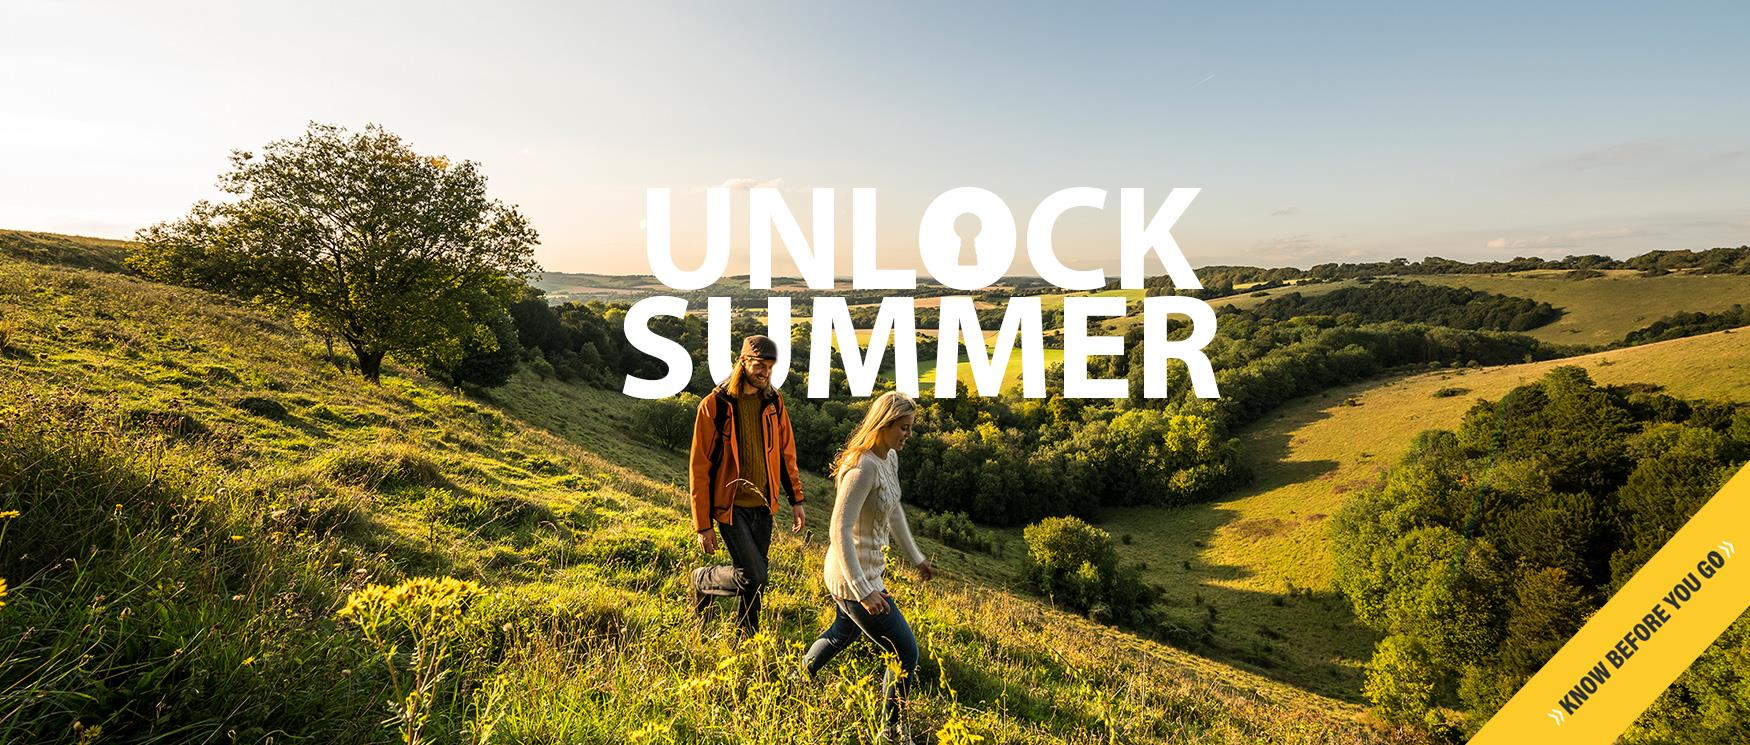 Guide to Summer: Days out - Accommodation - Stay Safe